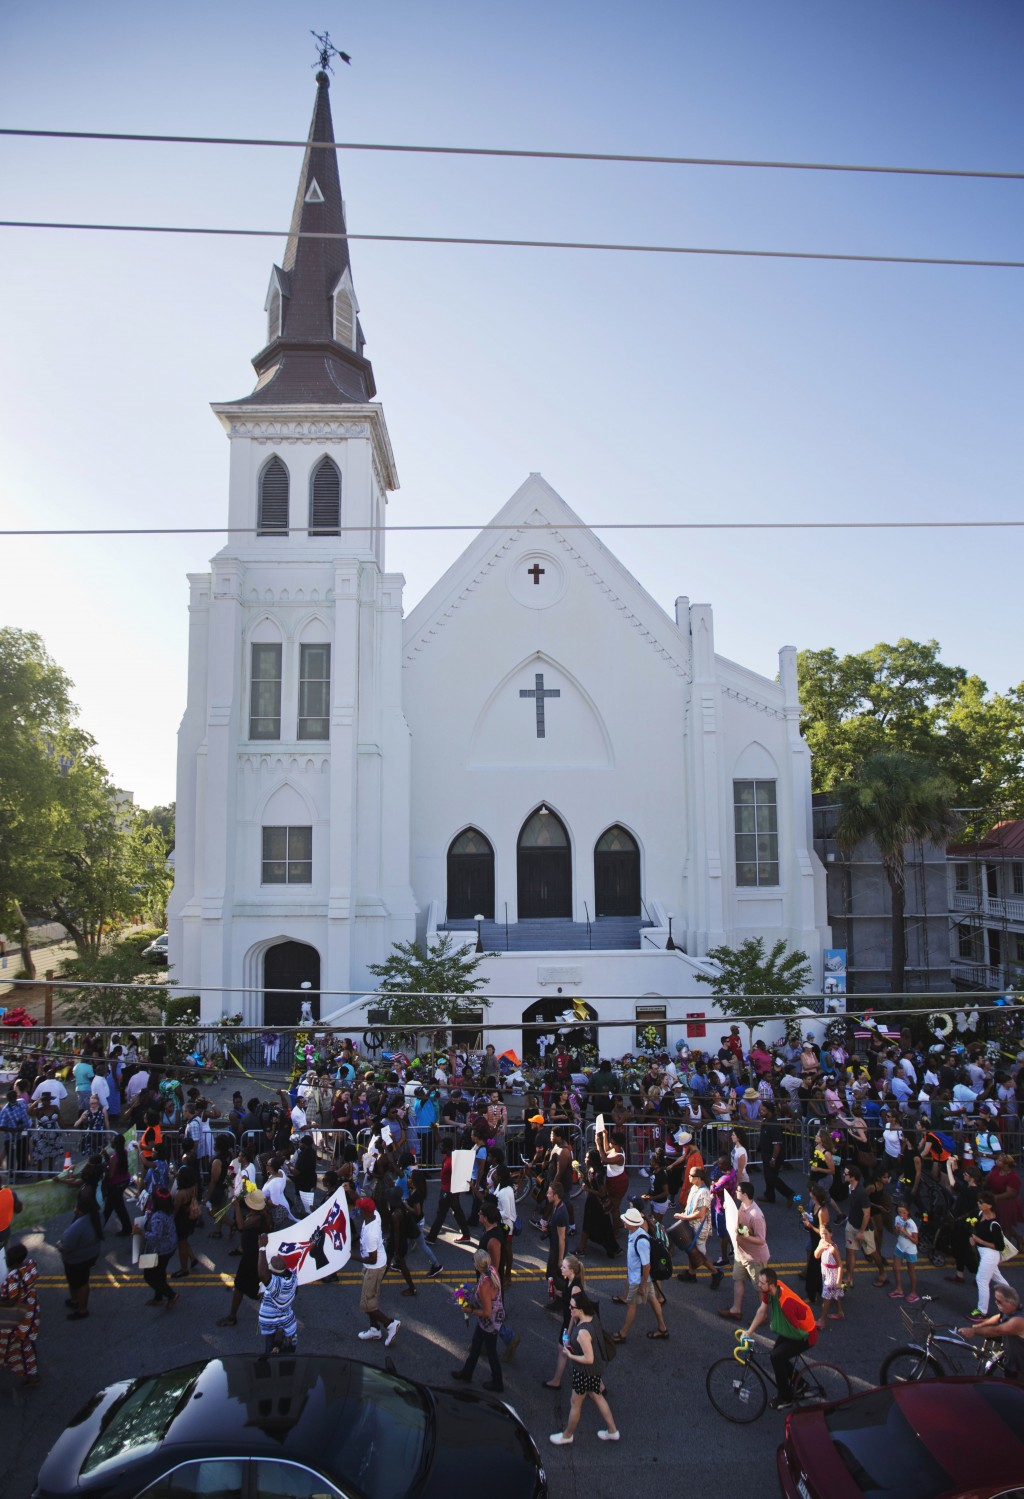 FILE - In this June 20, 2015, file photo, people march in memory of the Emanuel AME Church shooting victims in Charleston, S.C. The historic South Car...